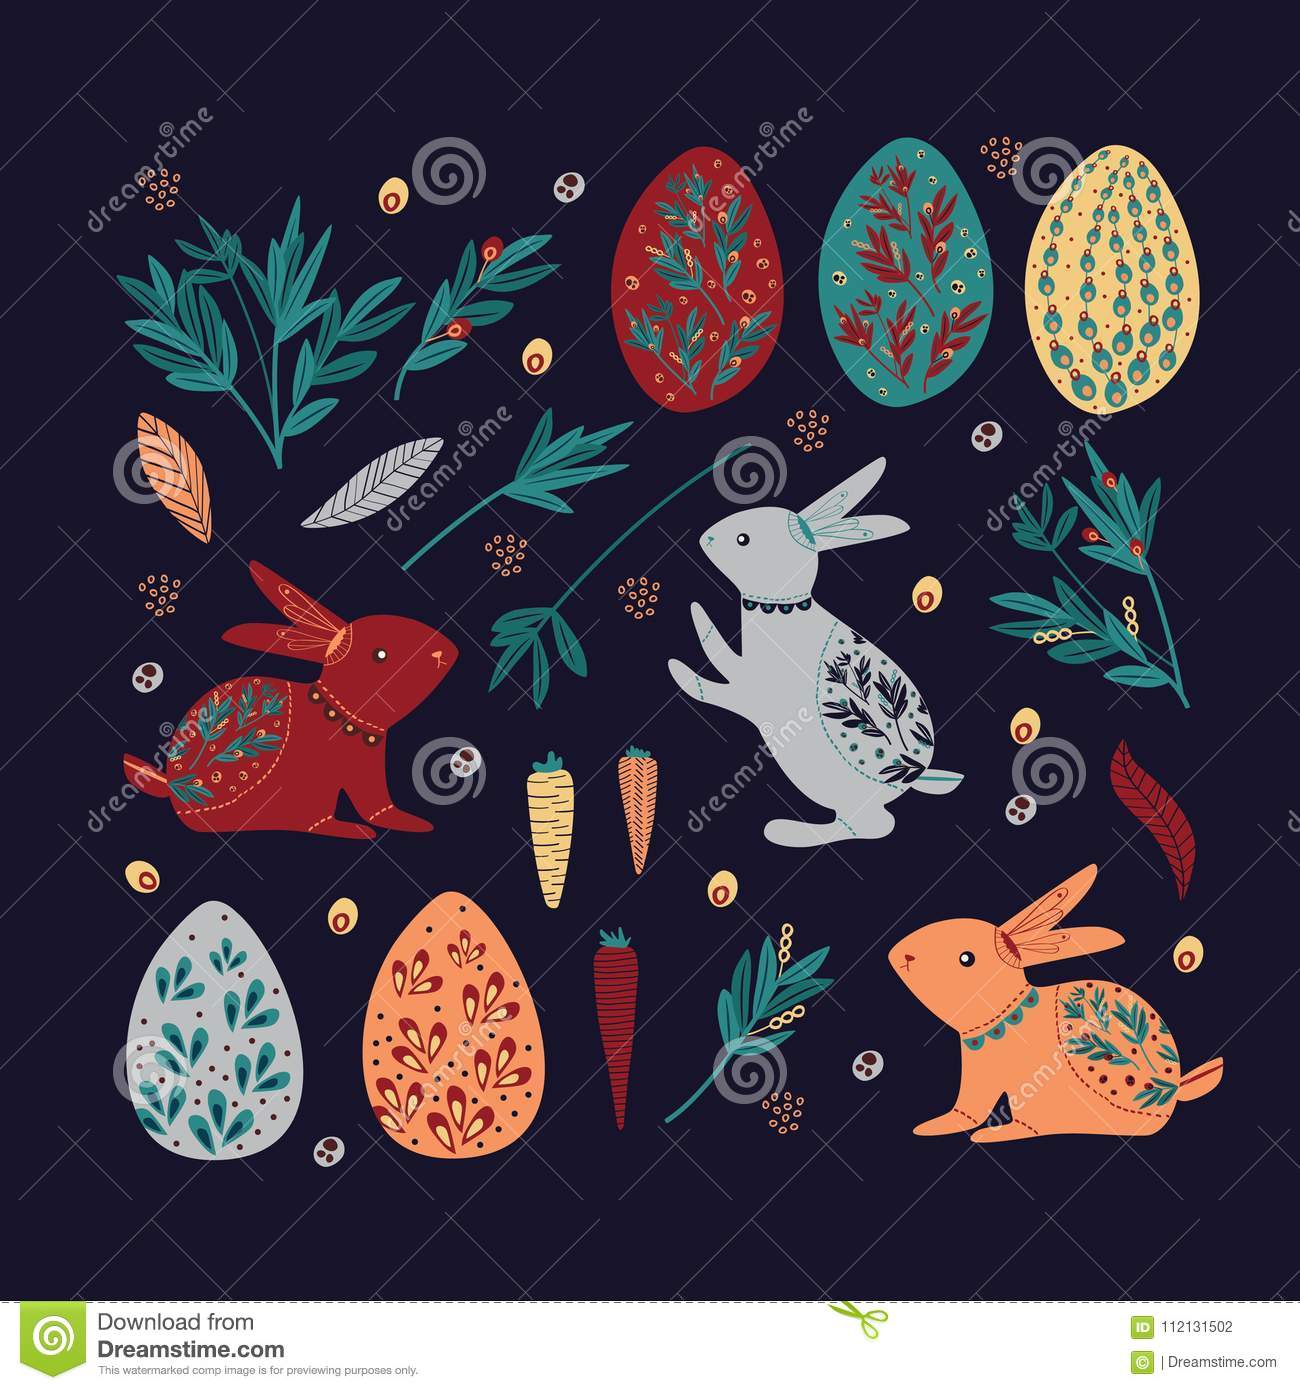 graphic vintage Easter